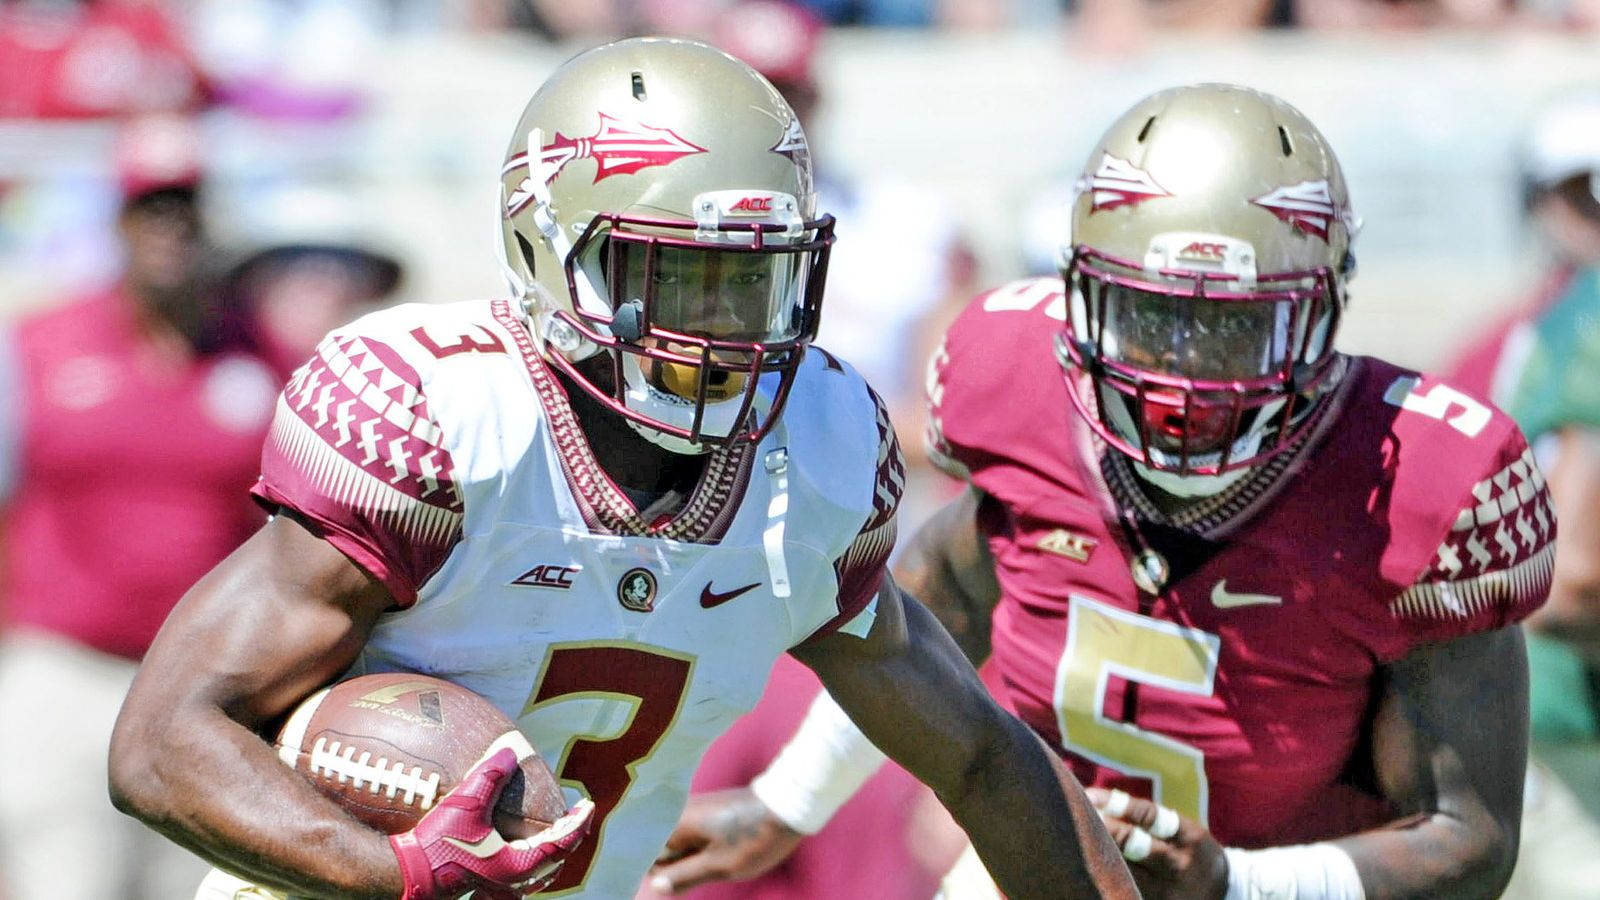 a fans perspective of the greatest rivalries in college football florida state university fsu versus This profile of the florida state and miami college football rivalry college football's great rivalries: florida one of college football's greatest rivalries.